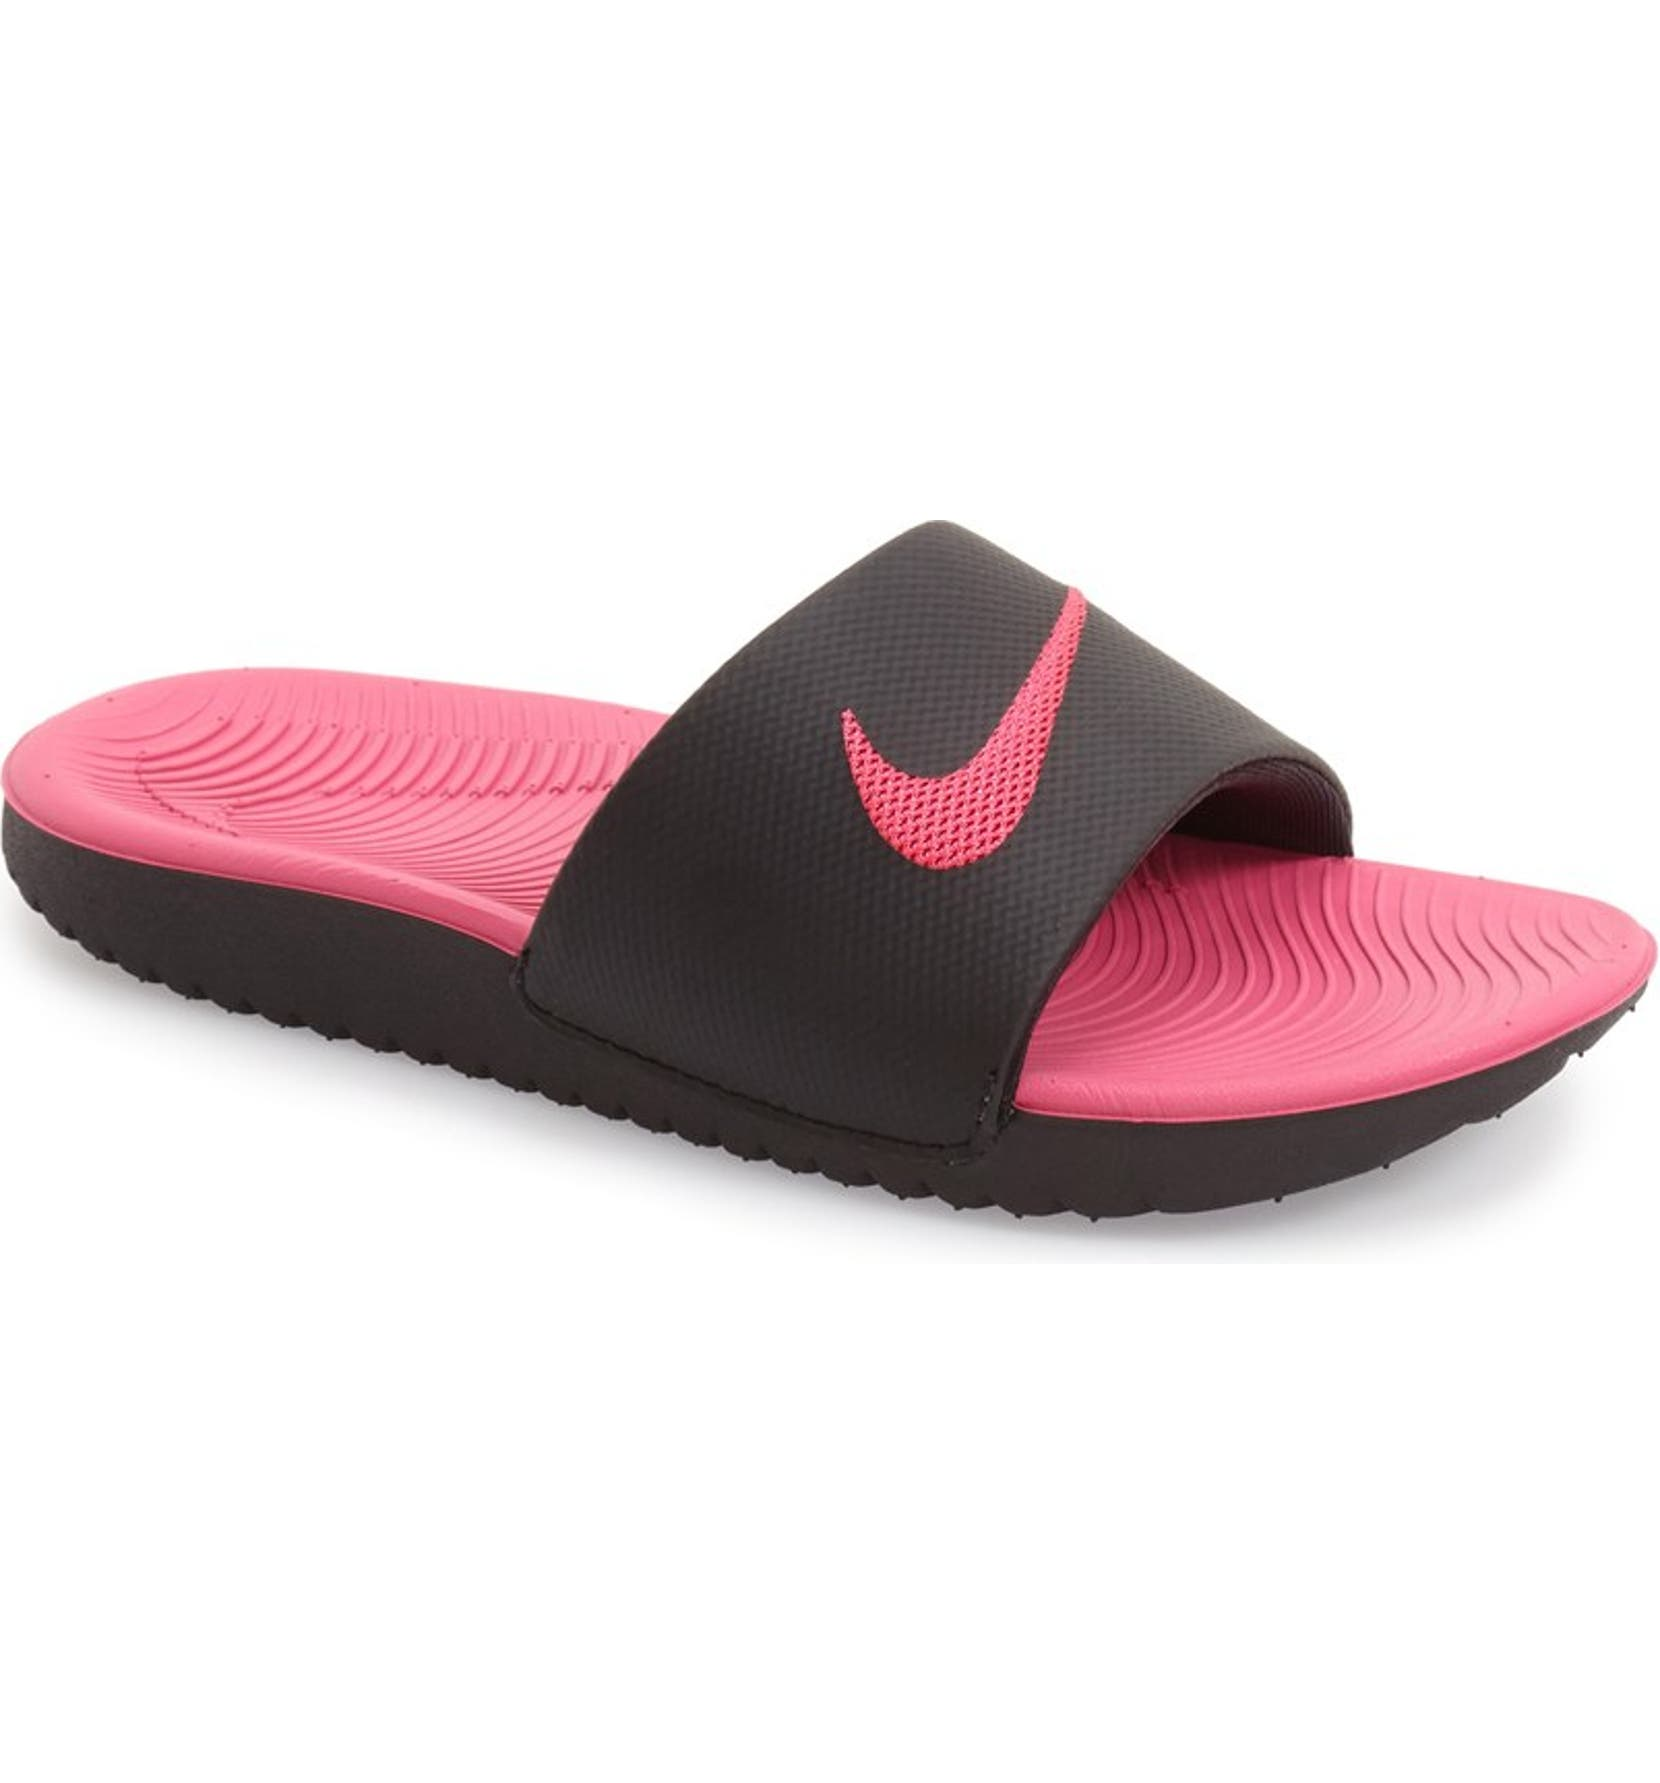 0766bce5f4 Nike 'Kawa' Slide Sandal (Toddler, Little Kid & Big Kid) | Nordstrom